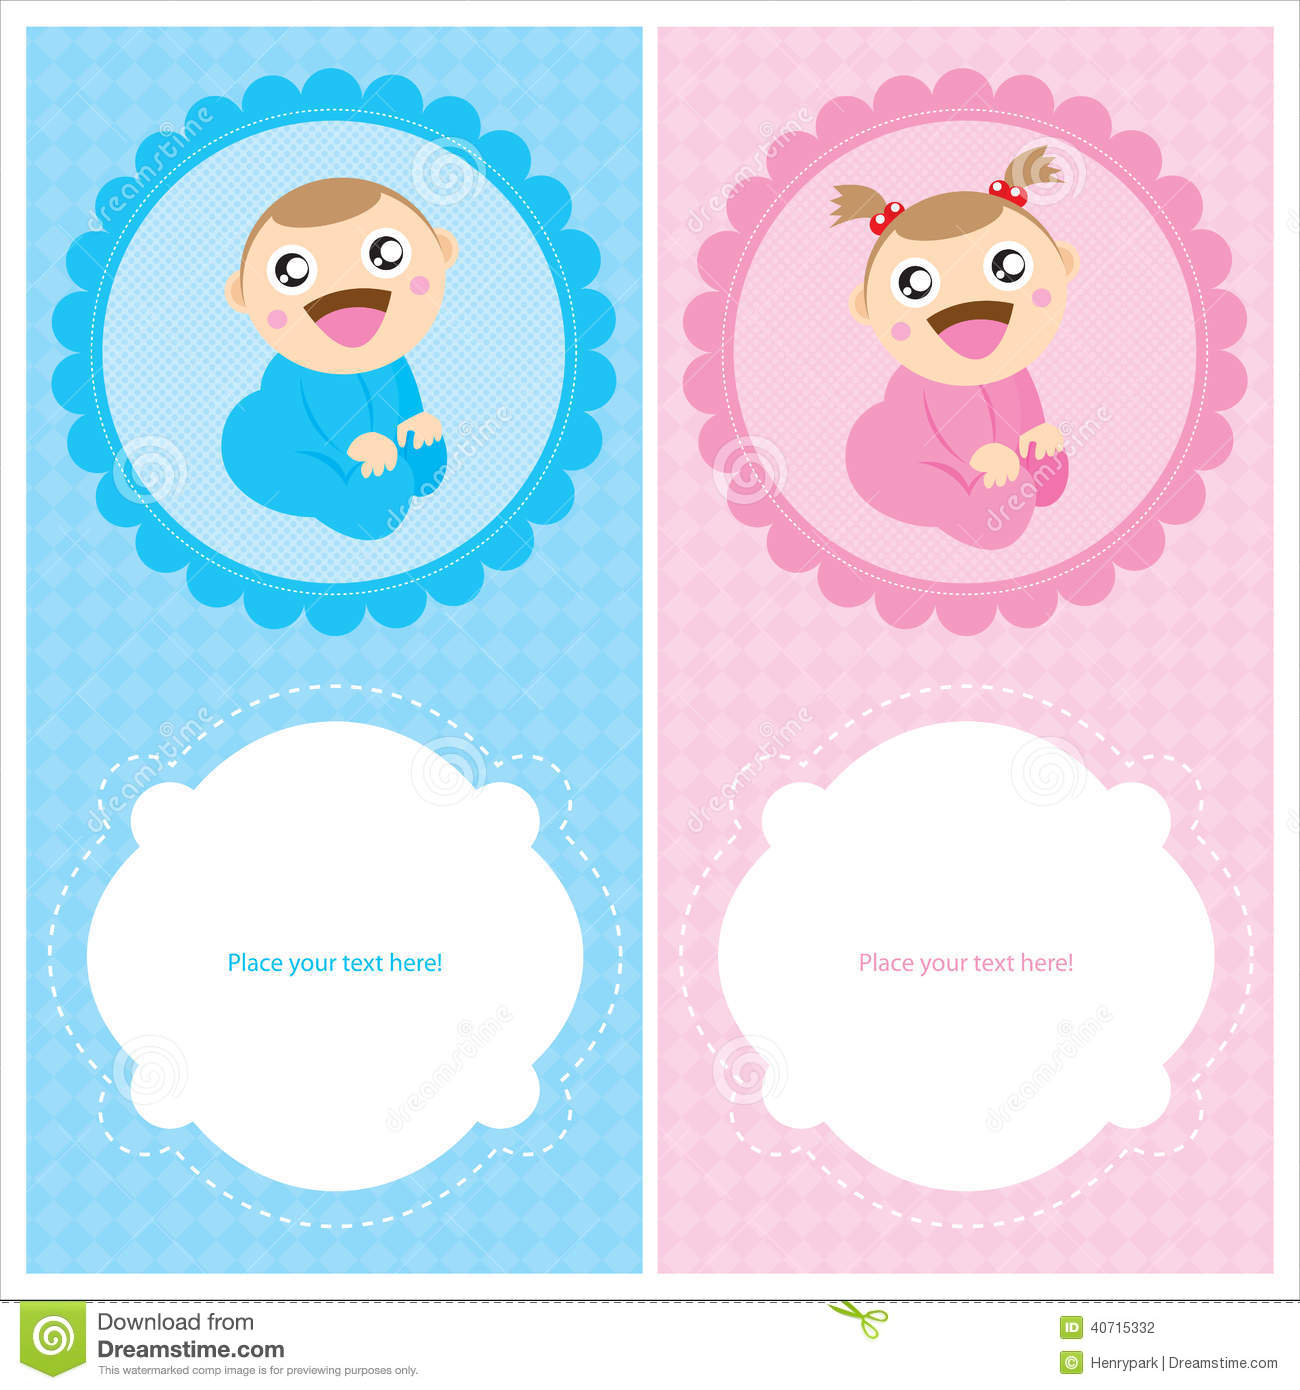 Baby Boy And Girl Greeting Card Design Stock Vector Illustration